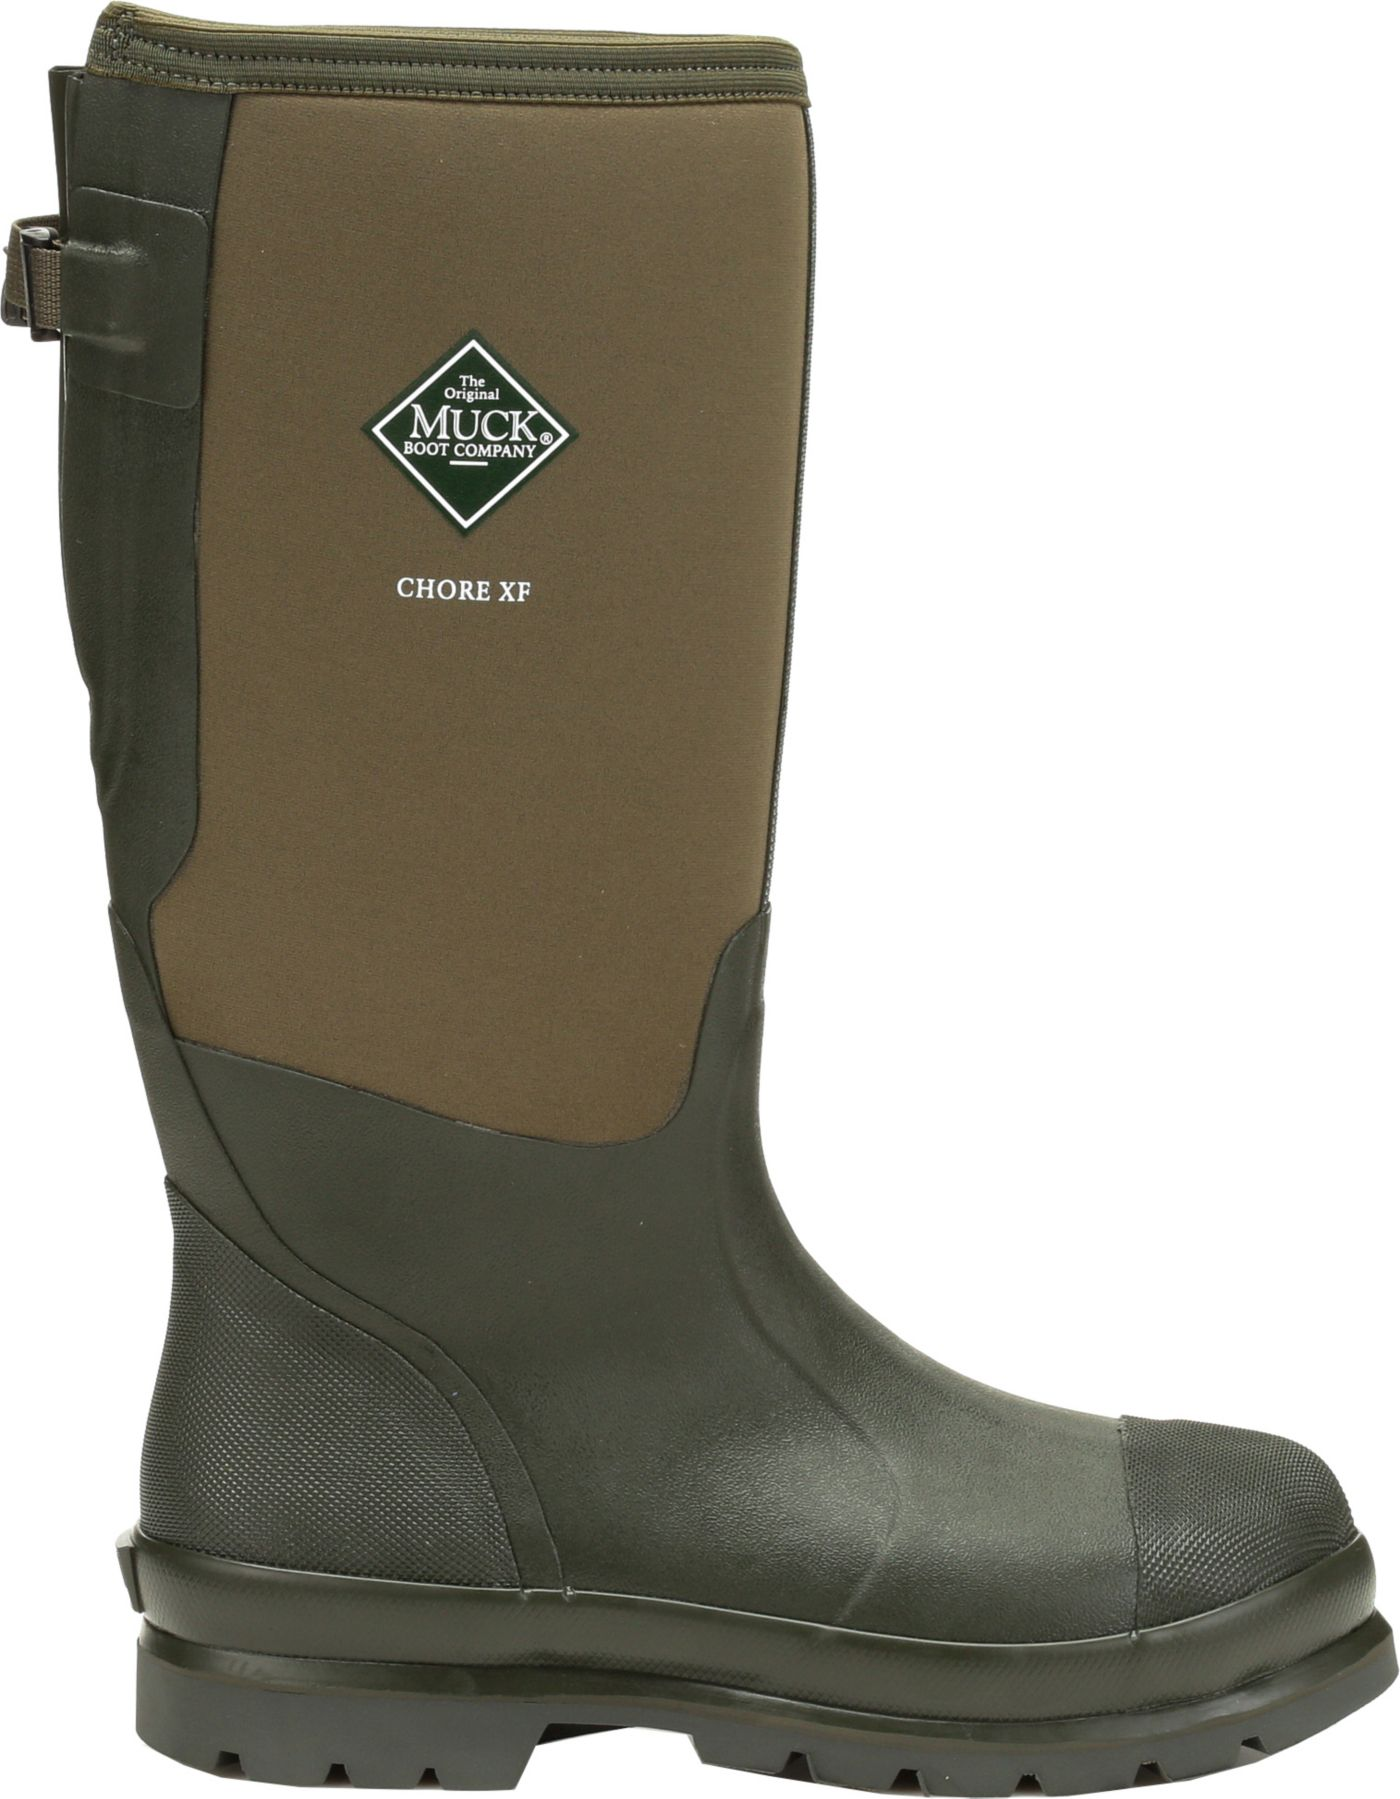 Muck Boots Men's Chore Classic Tall Gusset Waterproof Work Boots